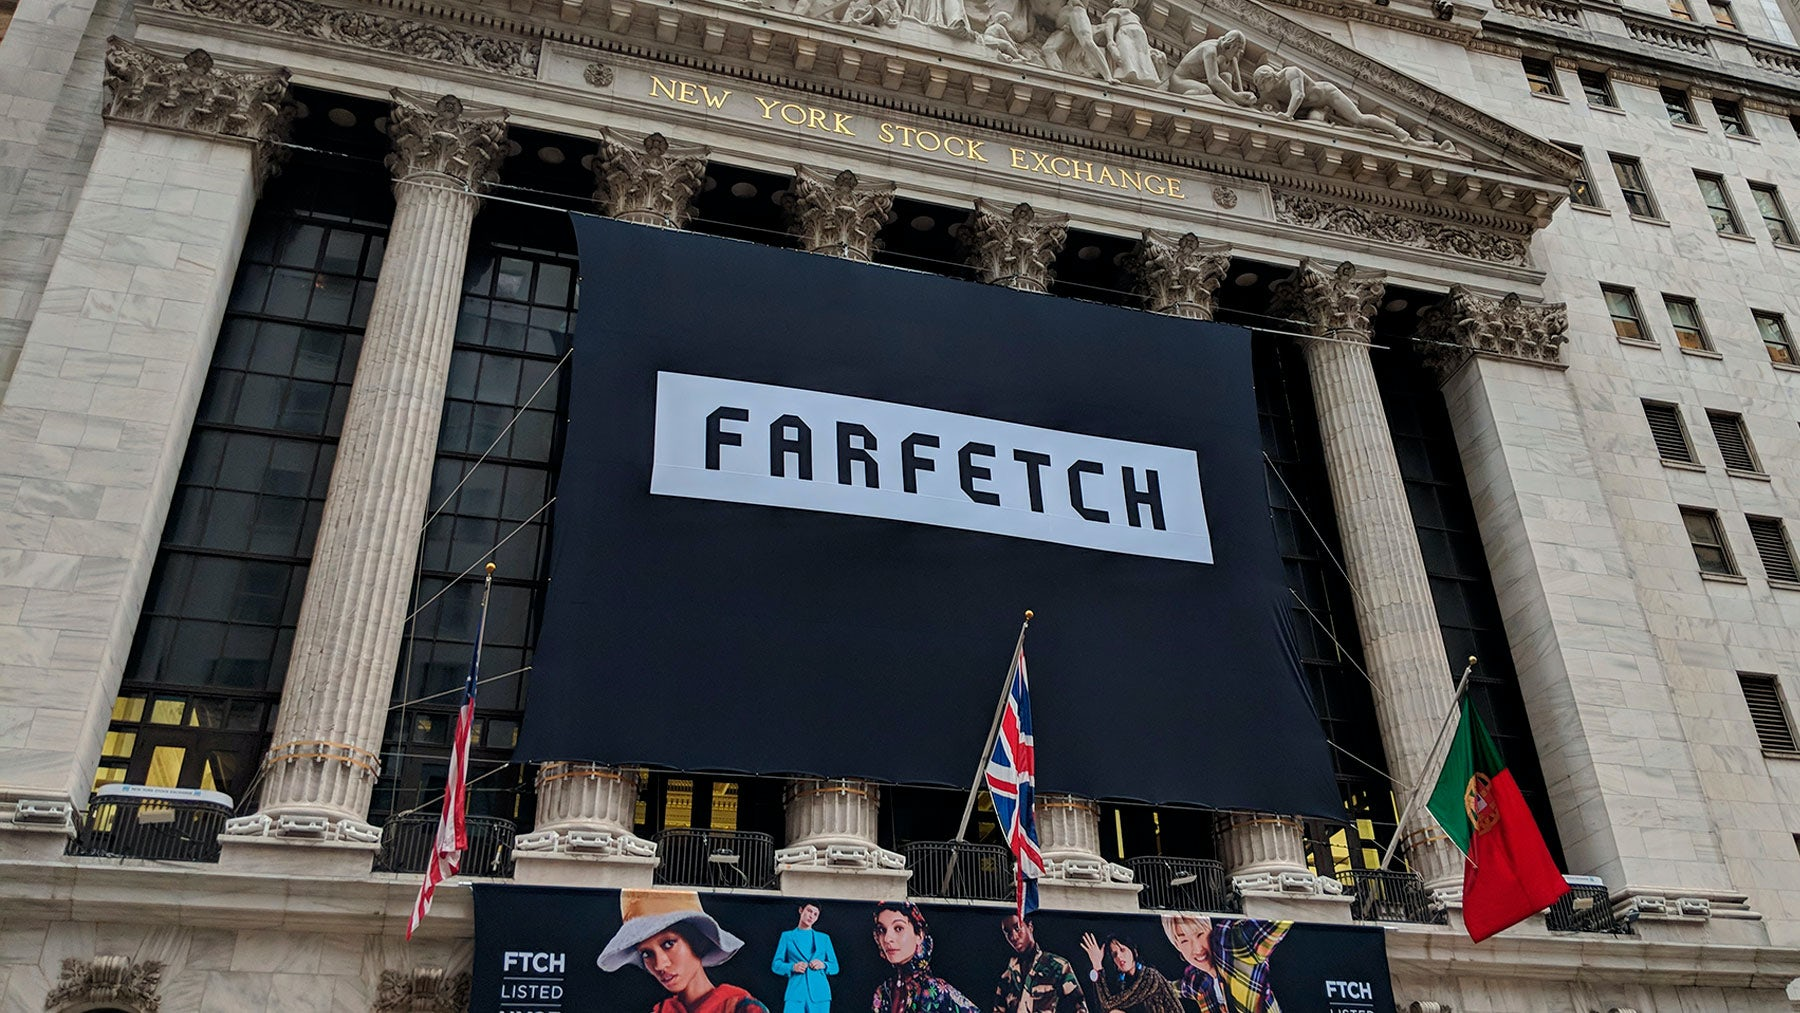 Farfetch Sales Jump in First Results Since IPO